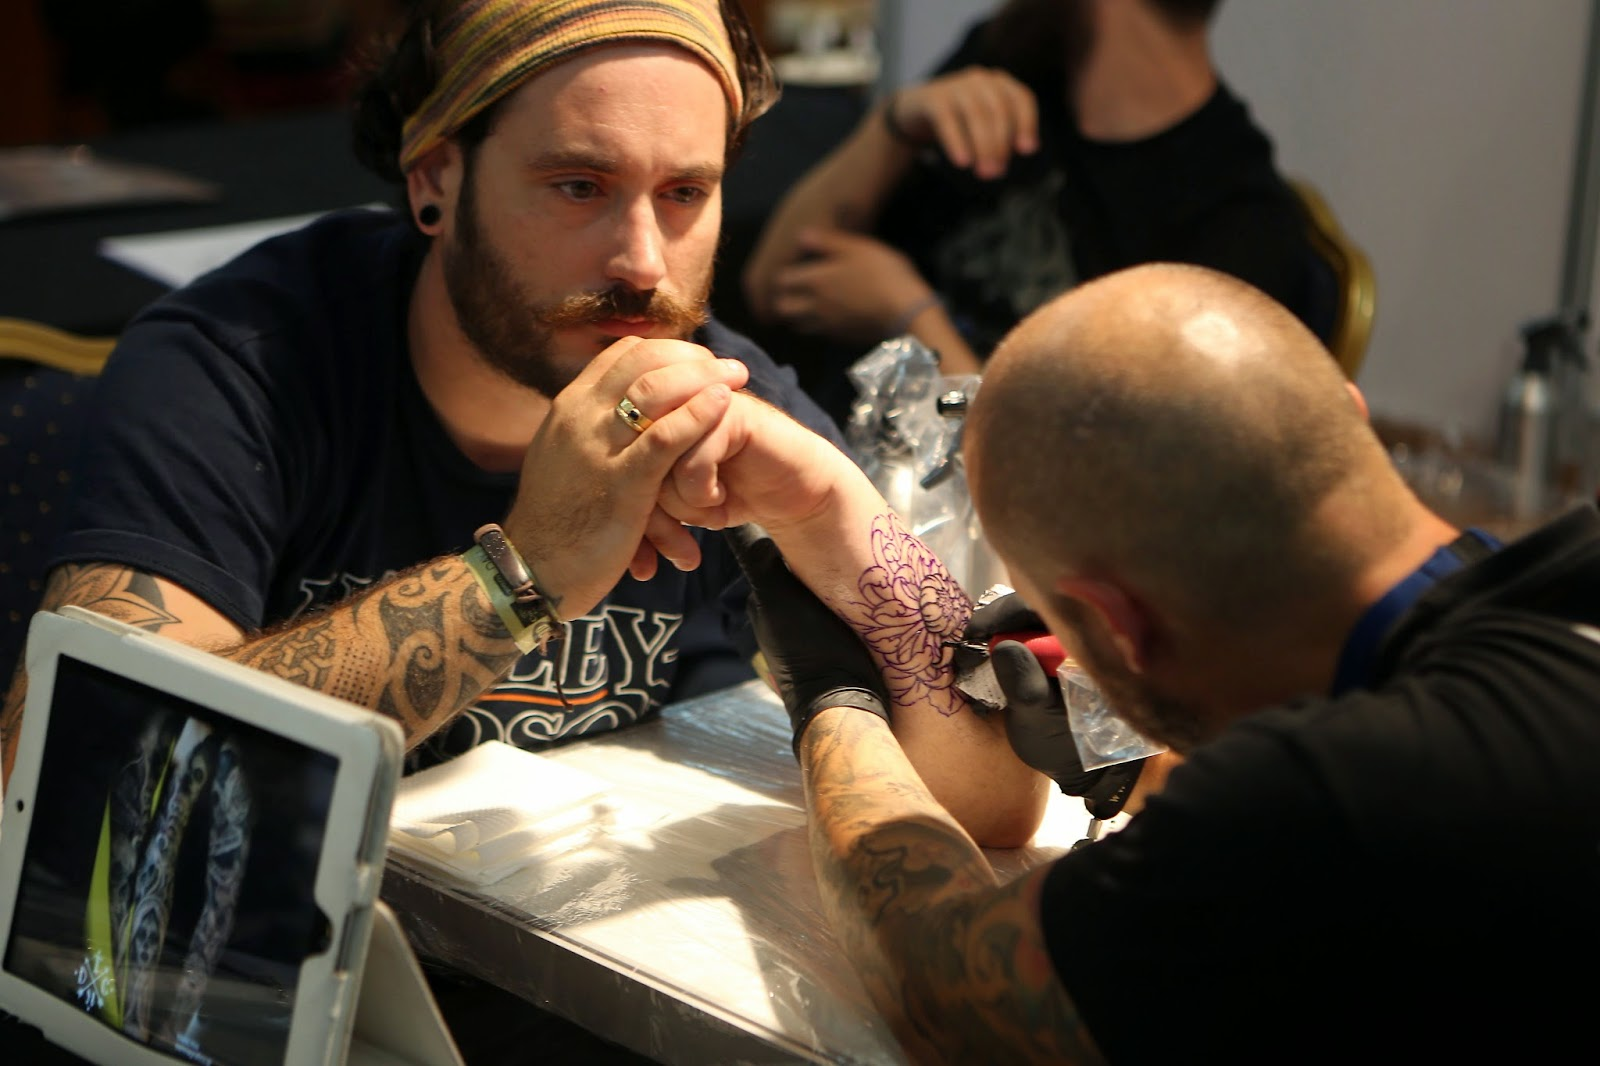 Art, Body Tattoo, Coastal, Cyprus, Cyprus Tattoo Convention, Entertainment, Limassol, Men with Tattoo, News, Offbeat, Tattoo, Tattoo Artist, Tattoo Convention, Tattoo ink, Tattoo Machines, Women with Tattoo,